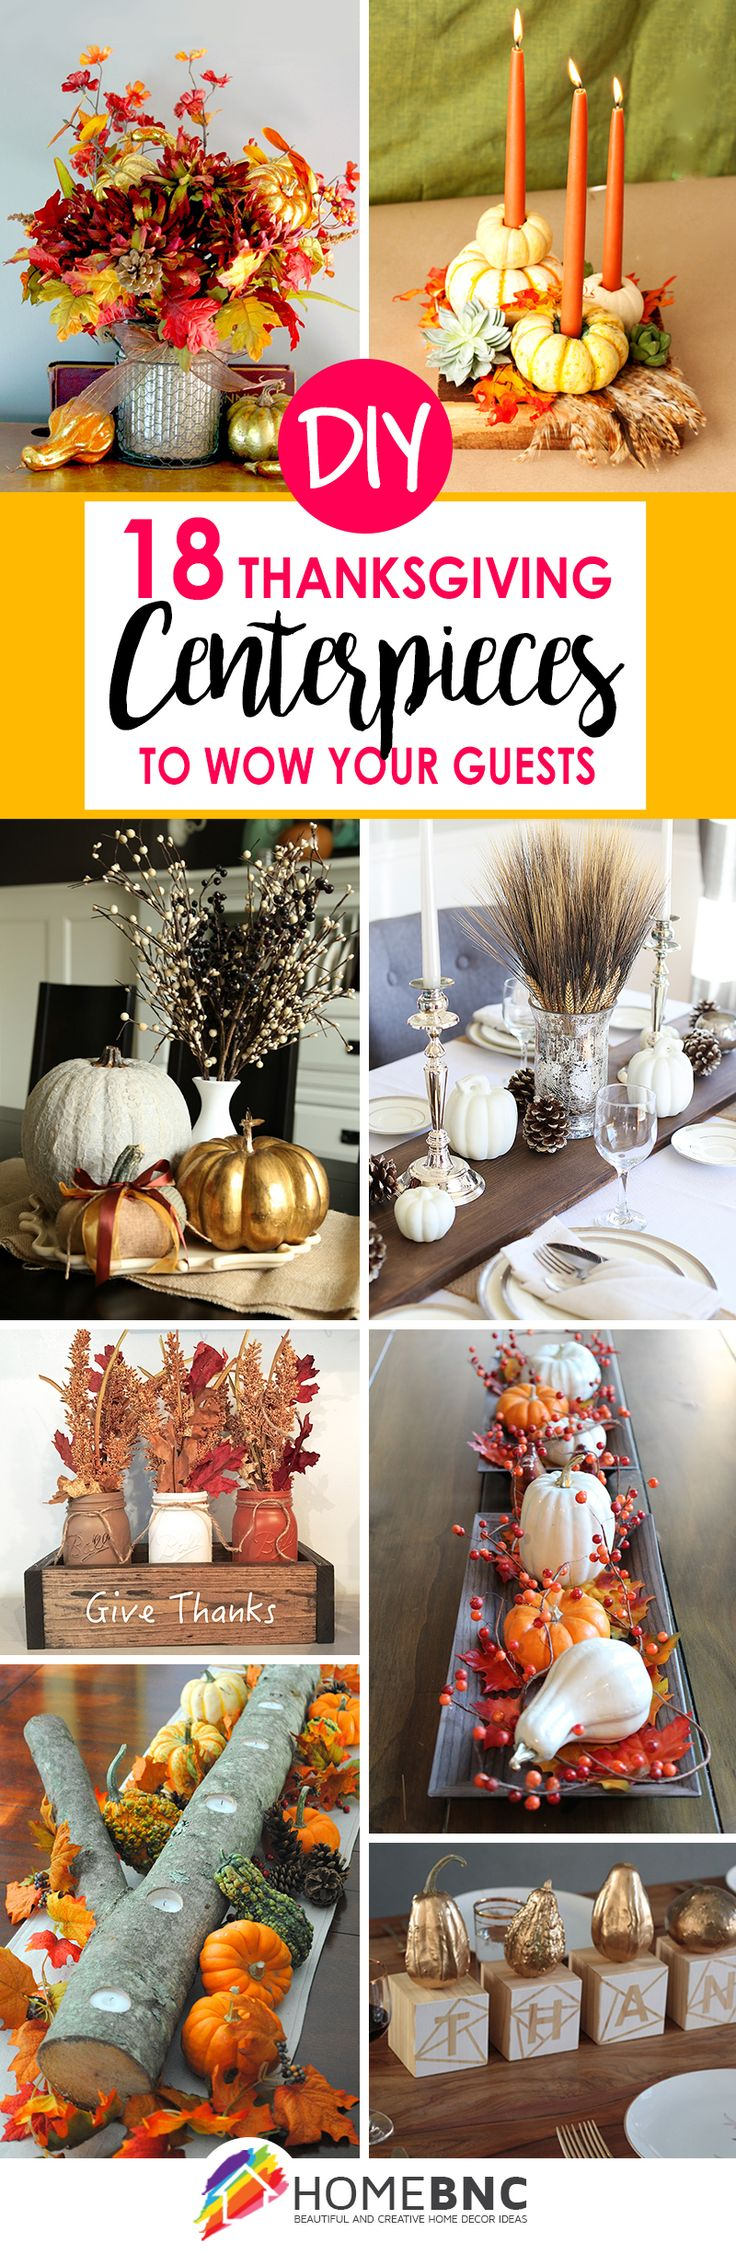 Diy thanksgiving decor pinterest - 18 Easy Diy Thanksgiving Centerpieces To Wow Your Guests